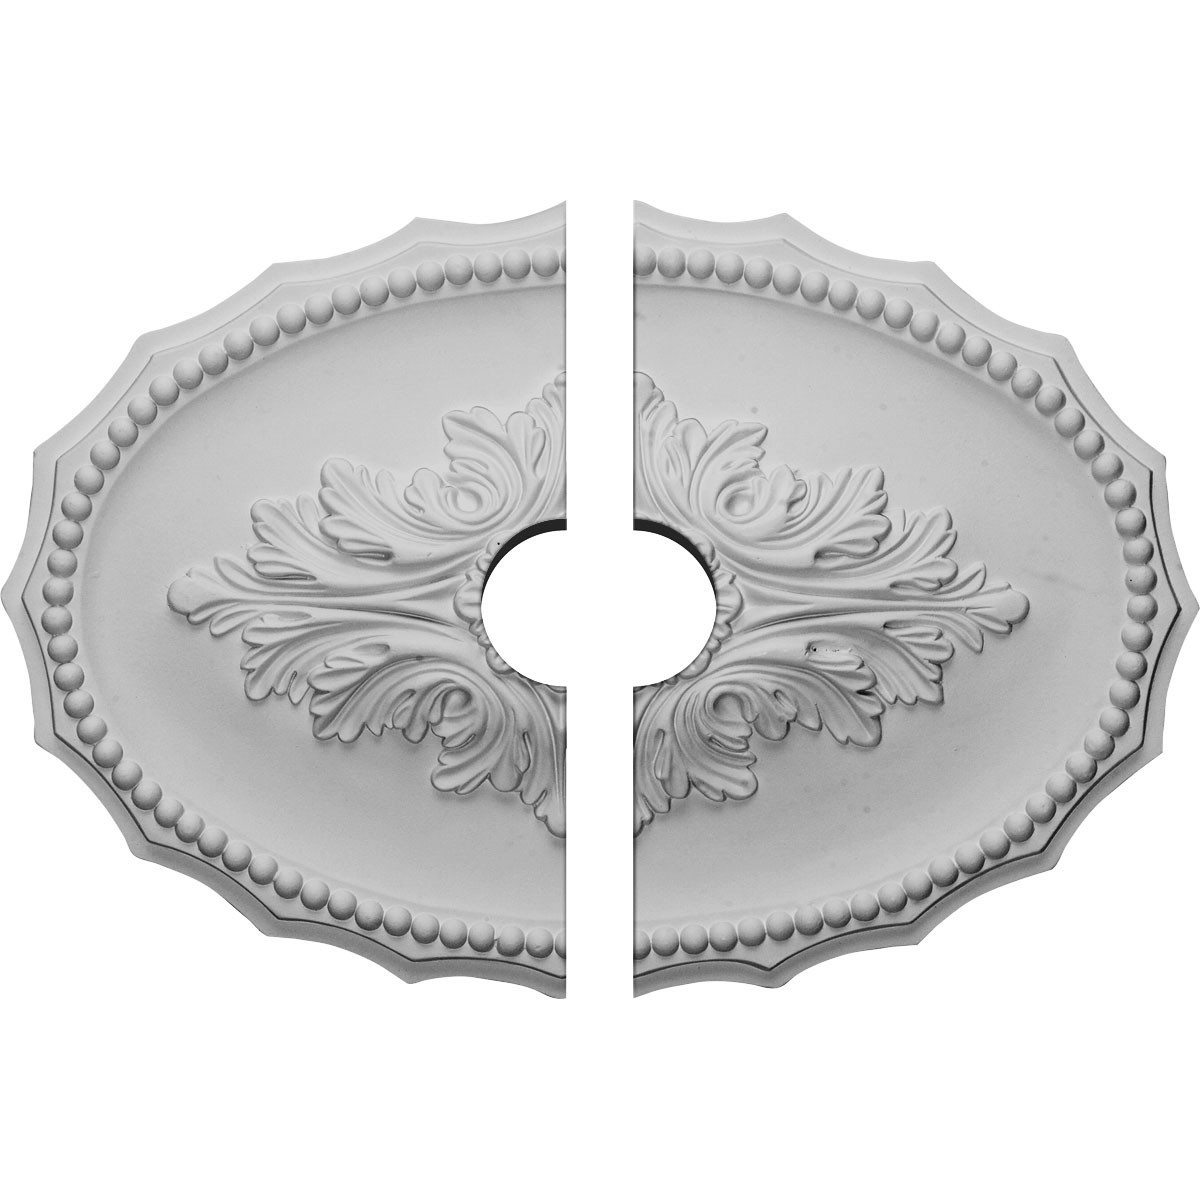 "EM-CM16OX2-03500 - 16 7/8""W x 11 3/4""H x 3 1/2""ID x 1 1/2""P Oxford Ceiling Medallion, Two Piece (Fits Canopies up to 3 1/2"")"